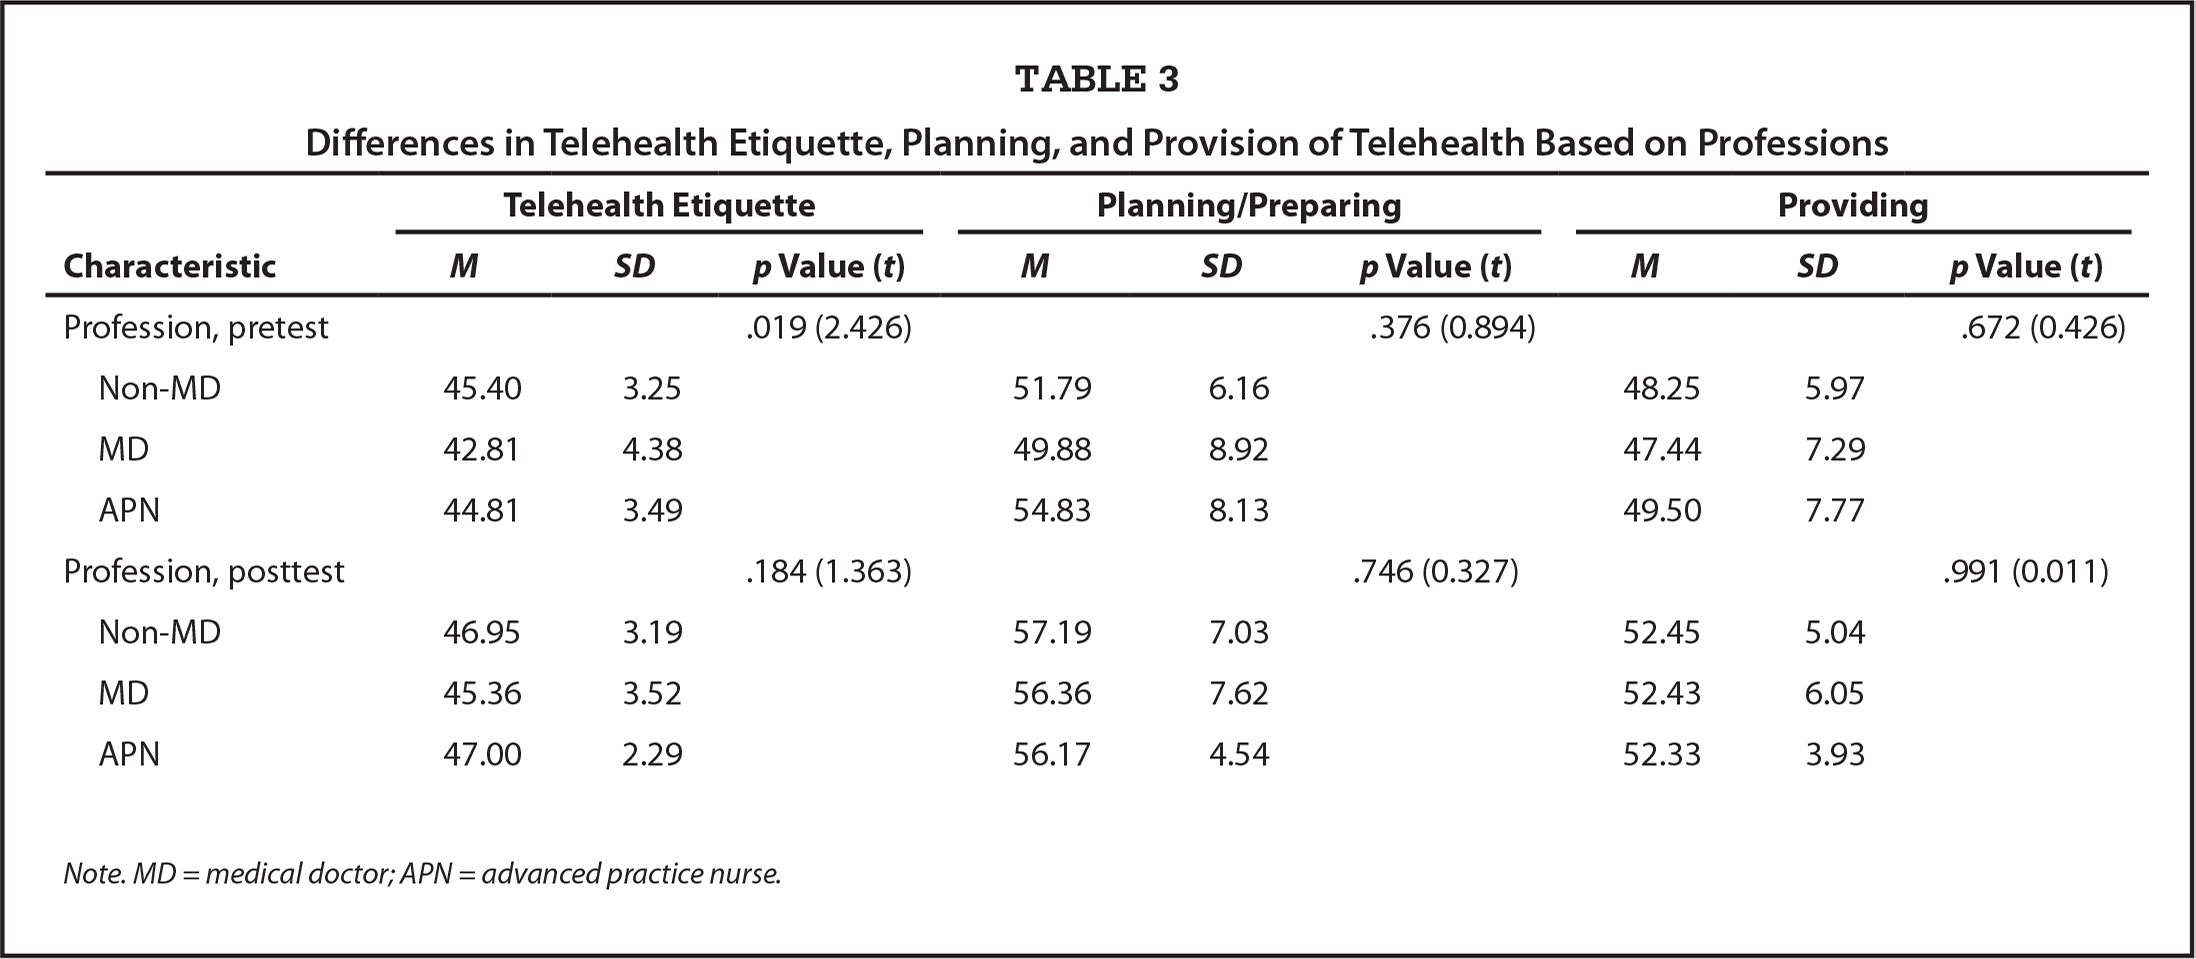 Differences in Telehealth Etiquette, Planning, and Provision of Telehealth Based on Professions